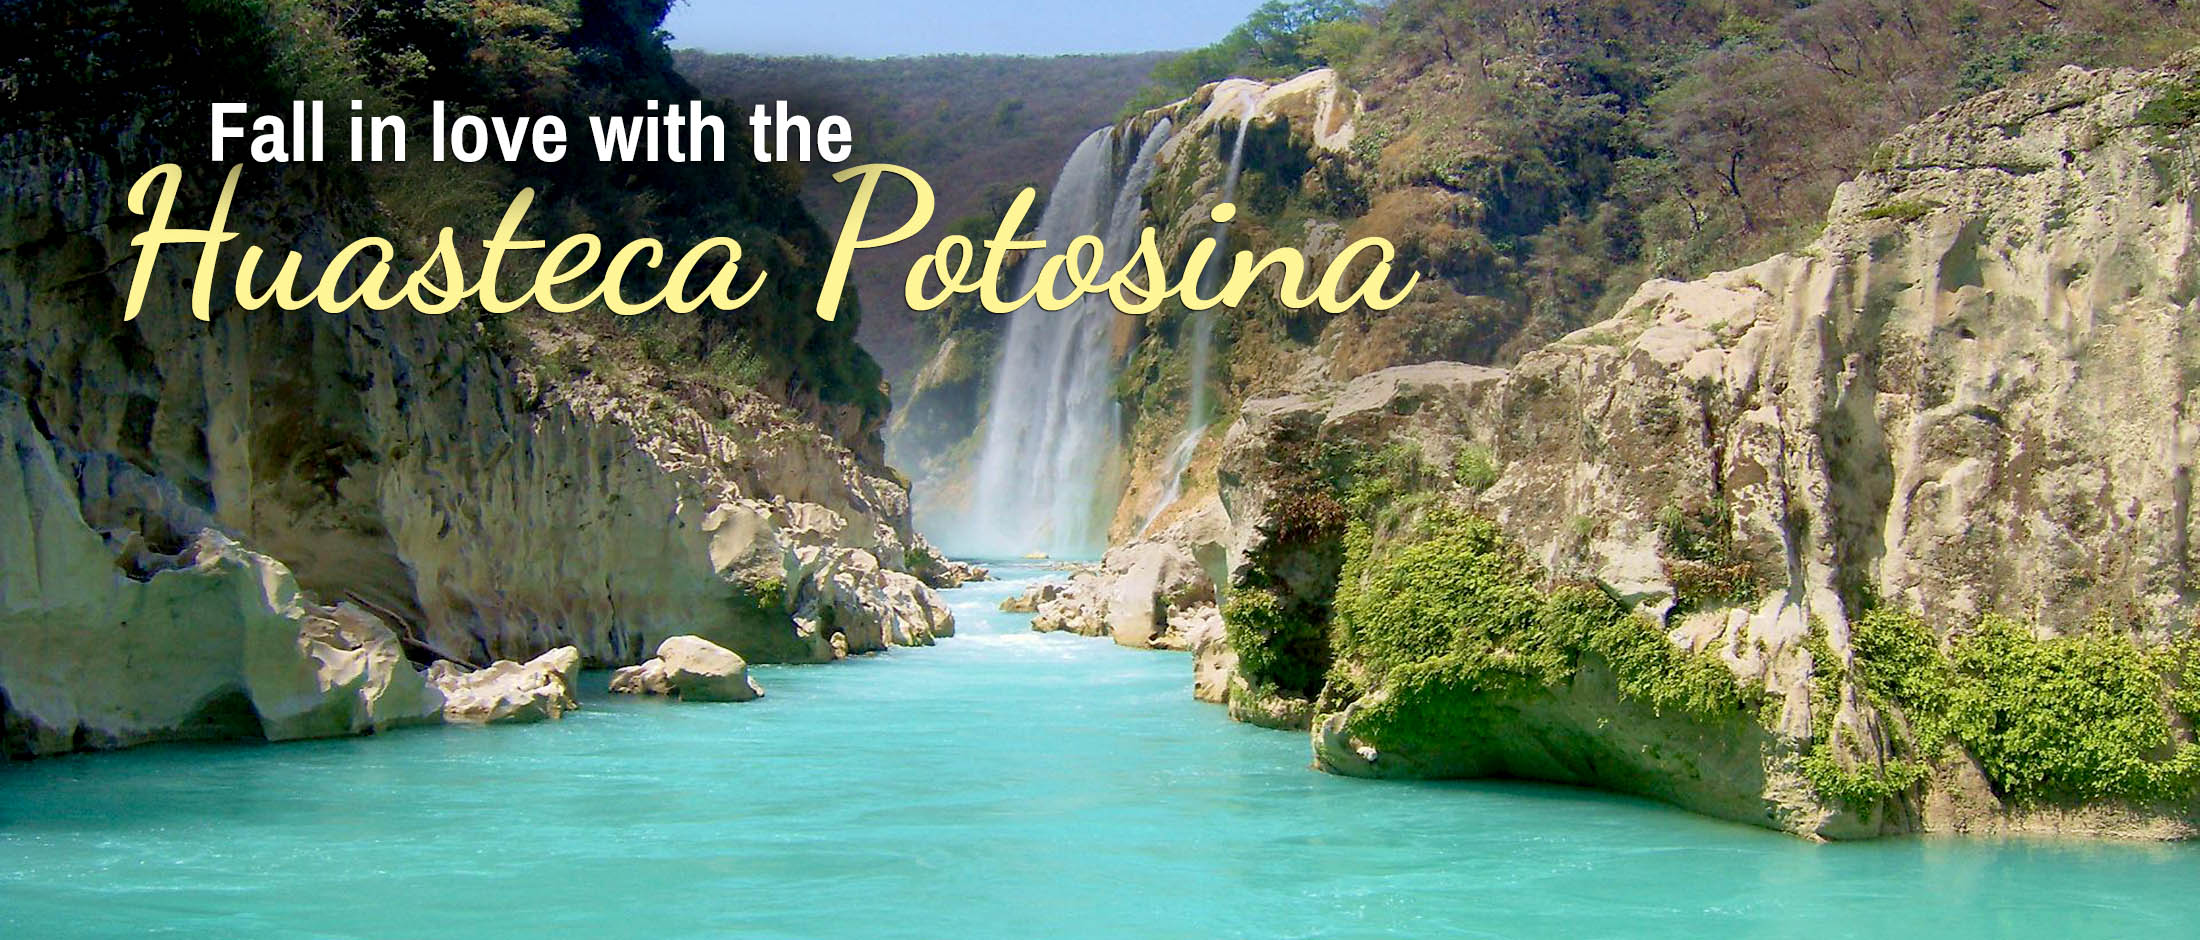 Hotel Real Tamasopo - Fall in love with the Huasteca Potosina